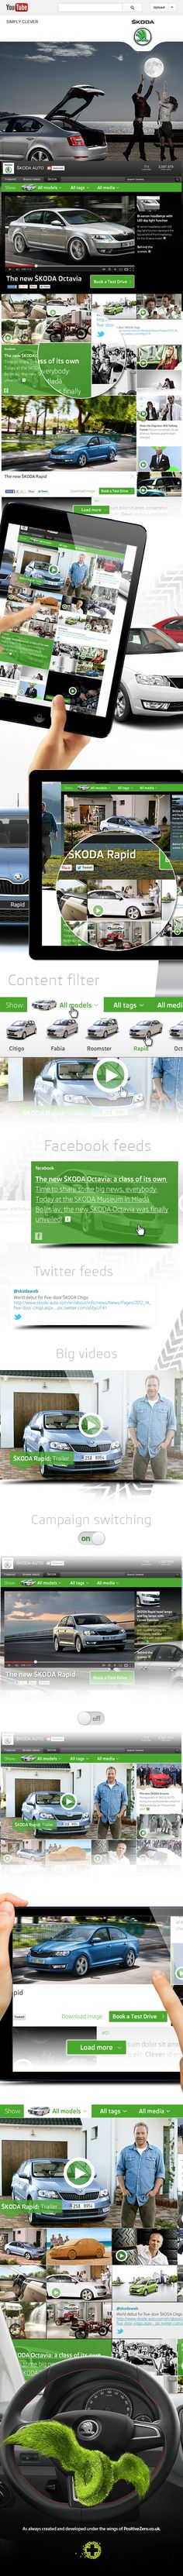 Škoda Youtube channel by PositiveZero.co.uk , via Behance